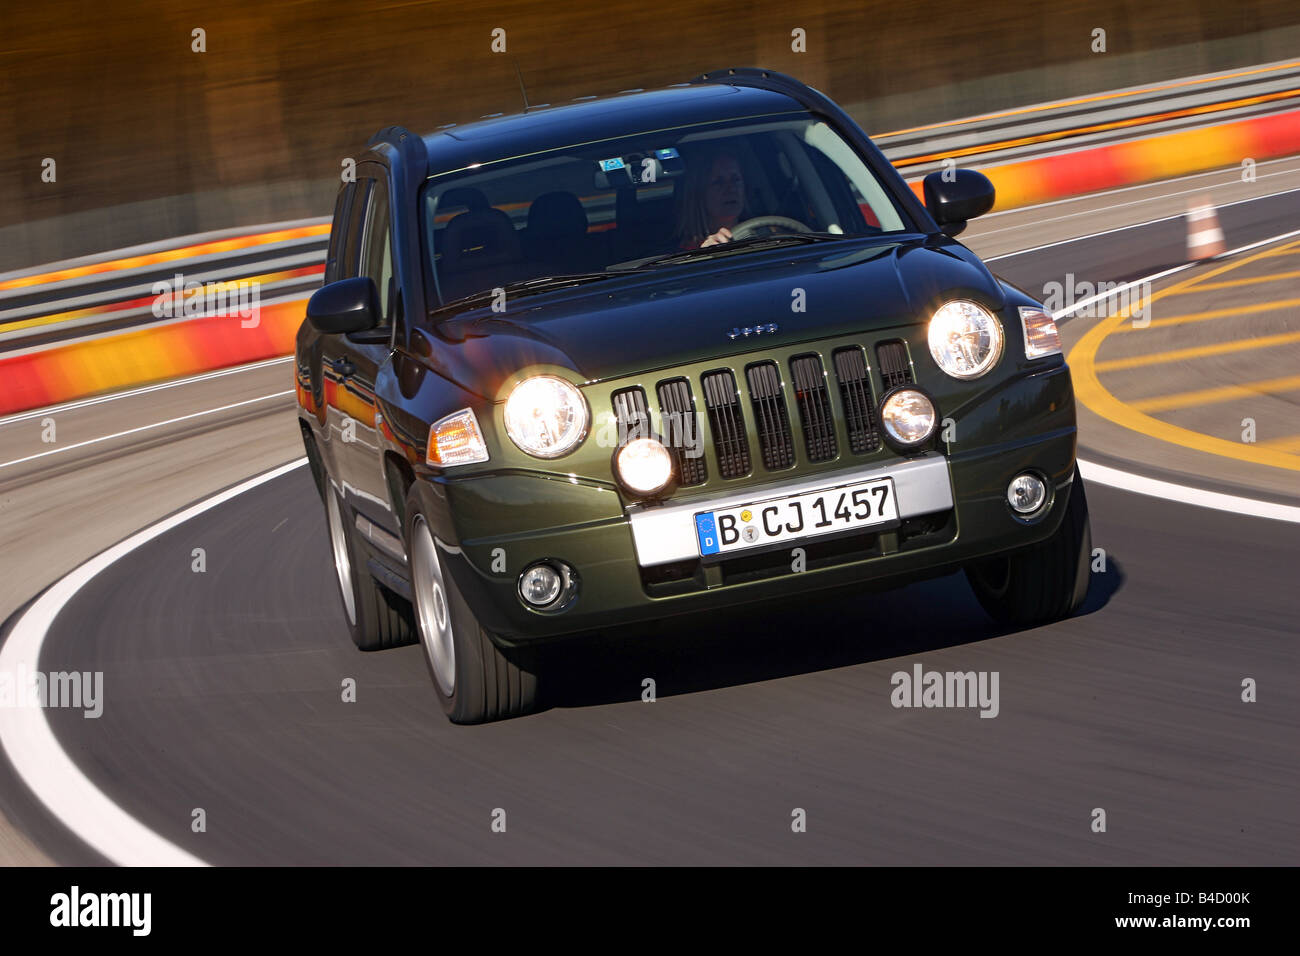 Jeep Compass 2.0 CRD Limited, model year 2007-, green, driving, diagonal from the front, frontal view, test track - Stock Image